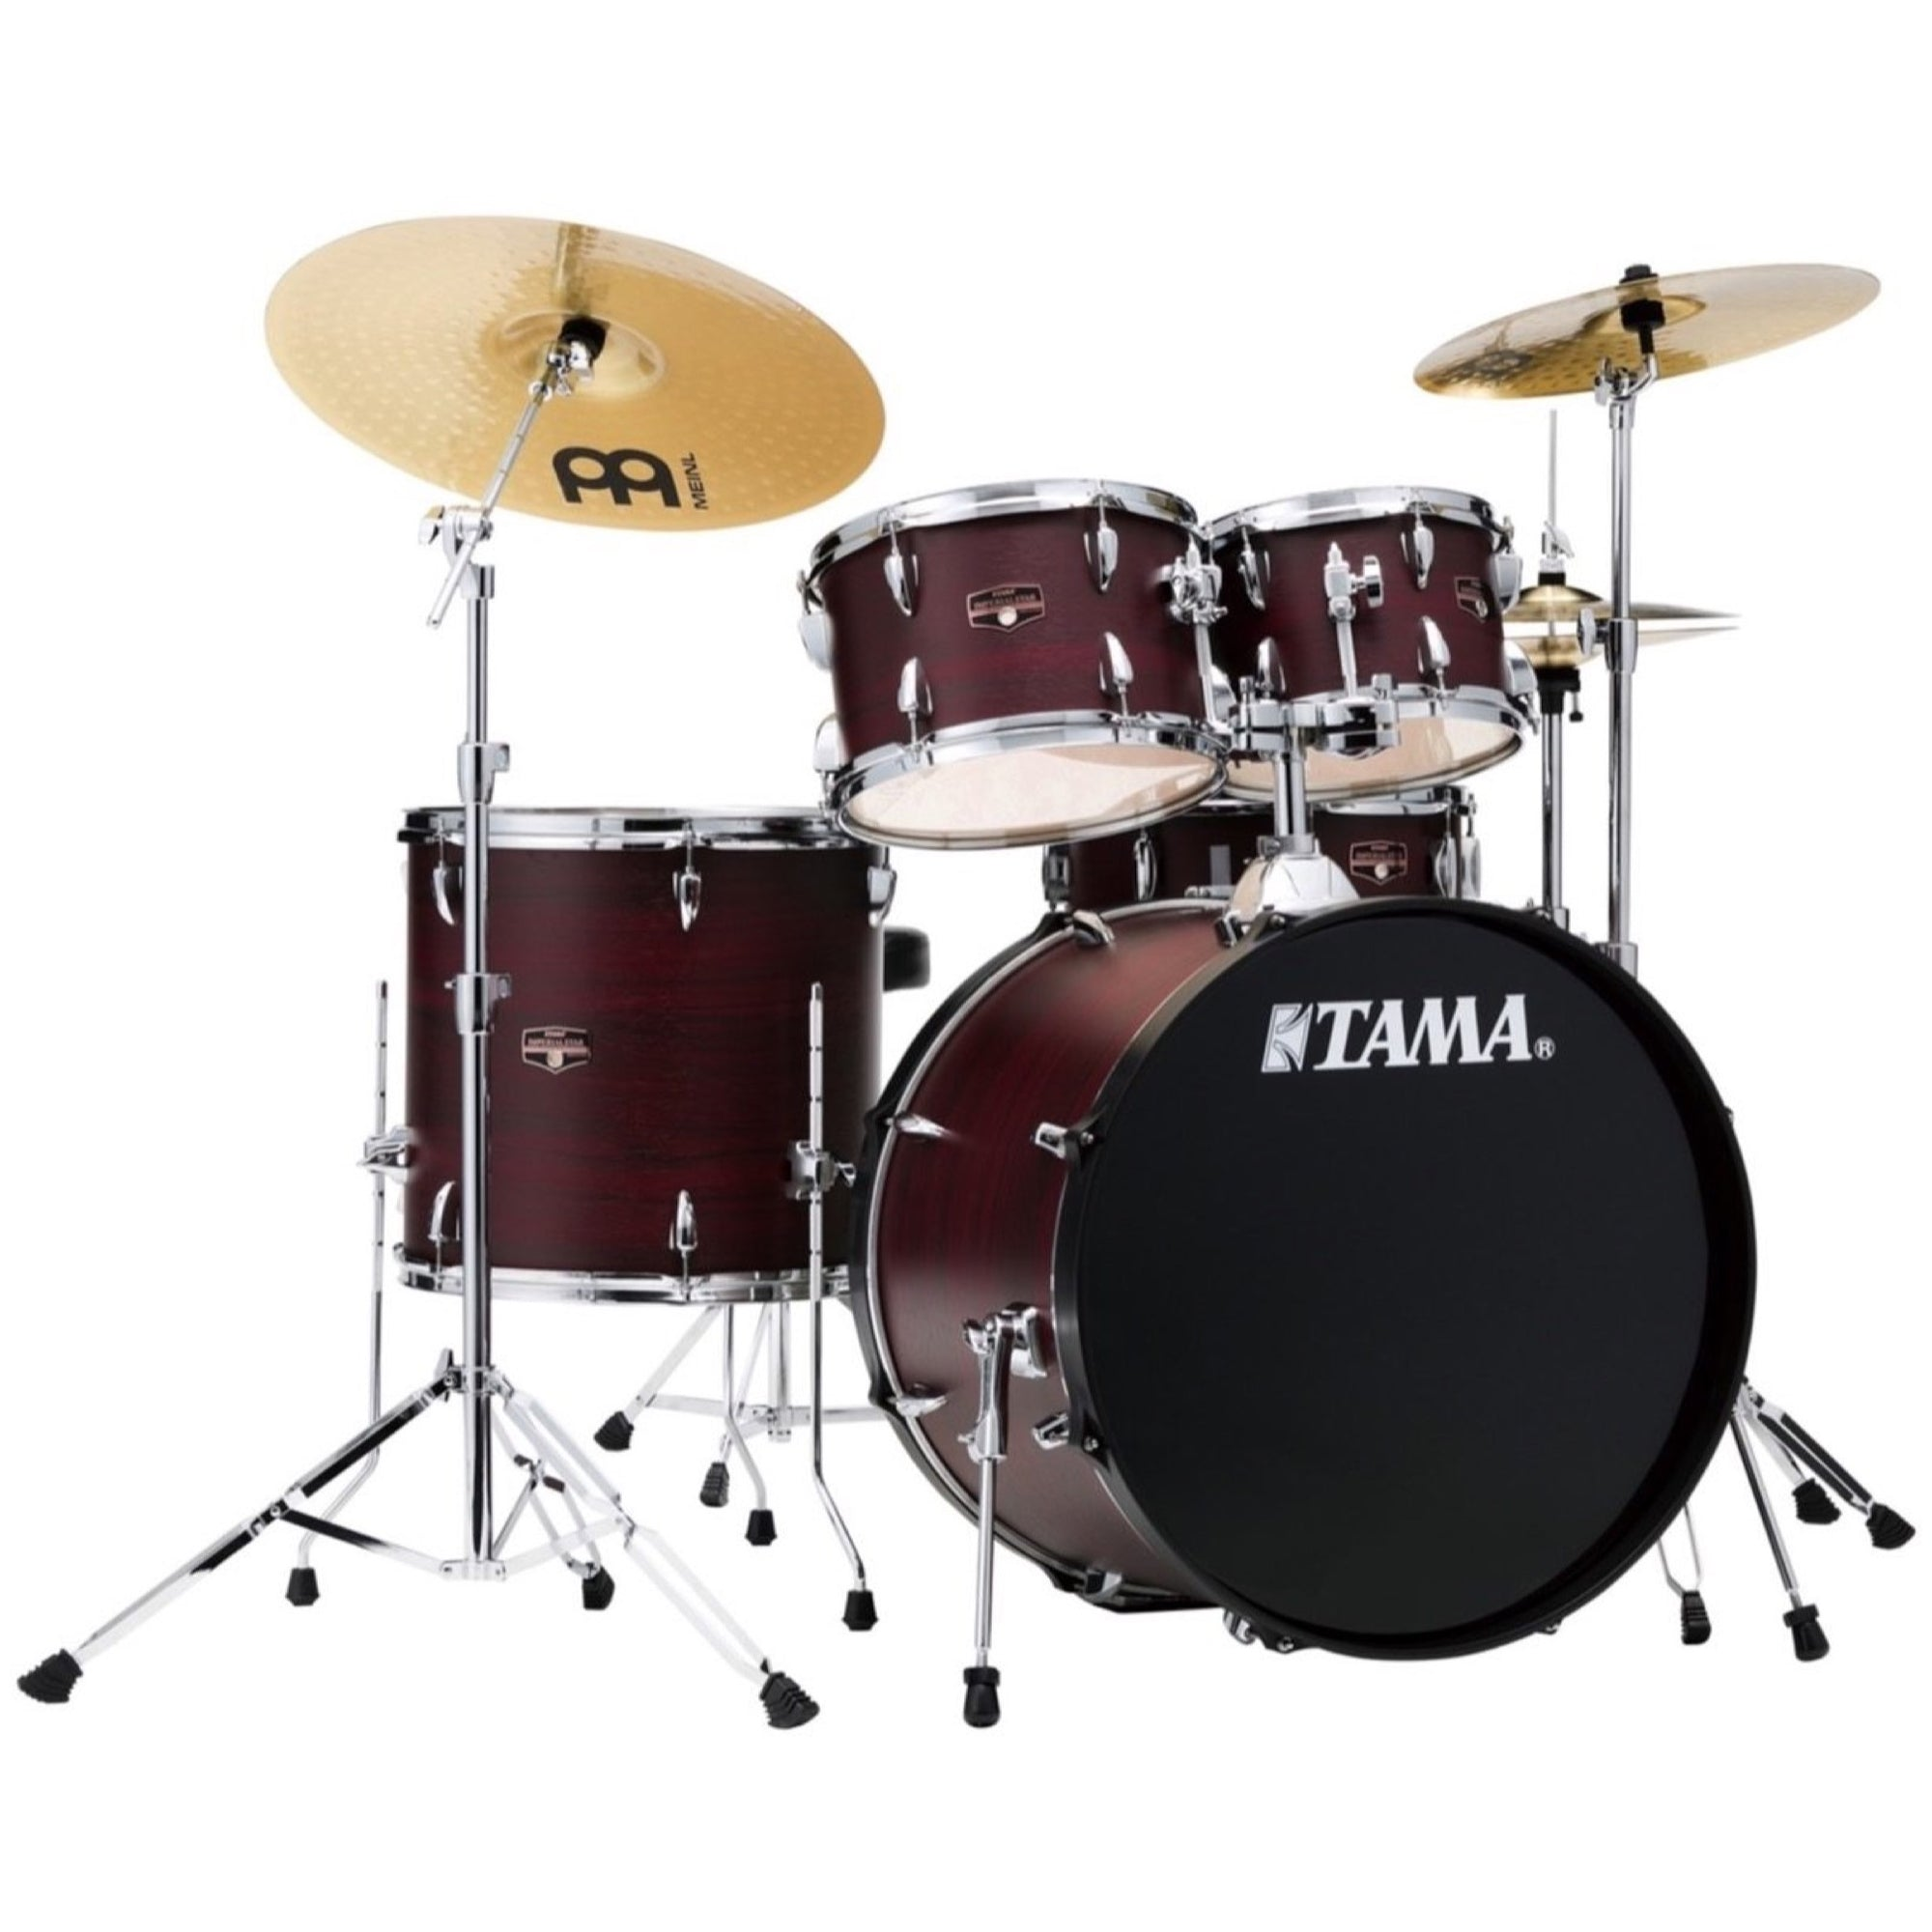 Tama IE52C Imperialstar Drum Kit, 5-Piece (with Meinl Cymbals), Burgundy Walnut